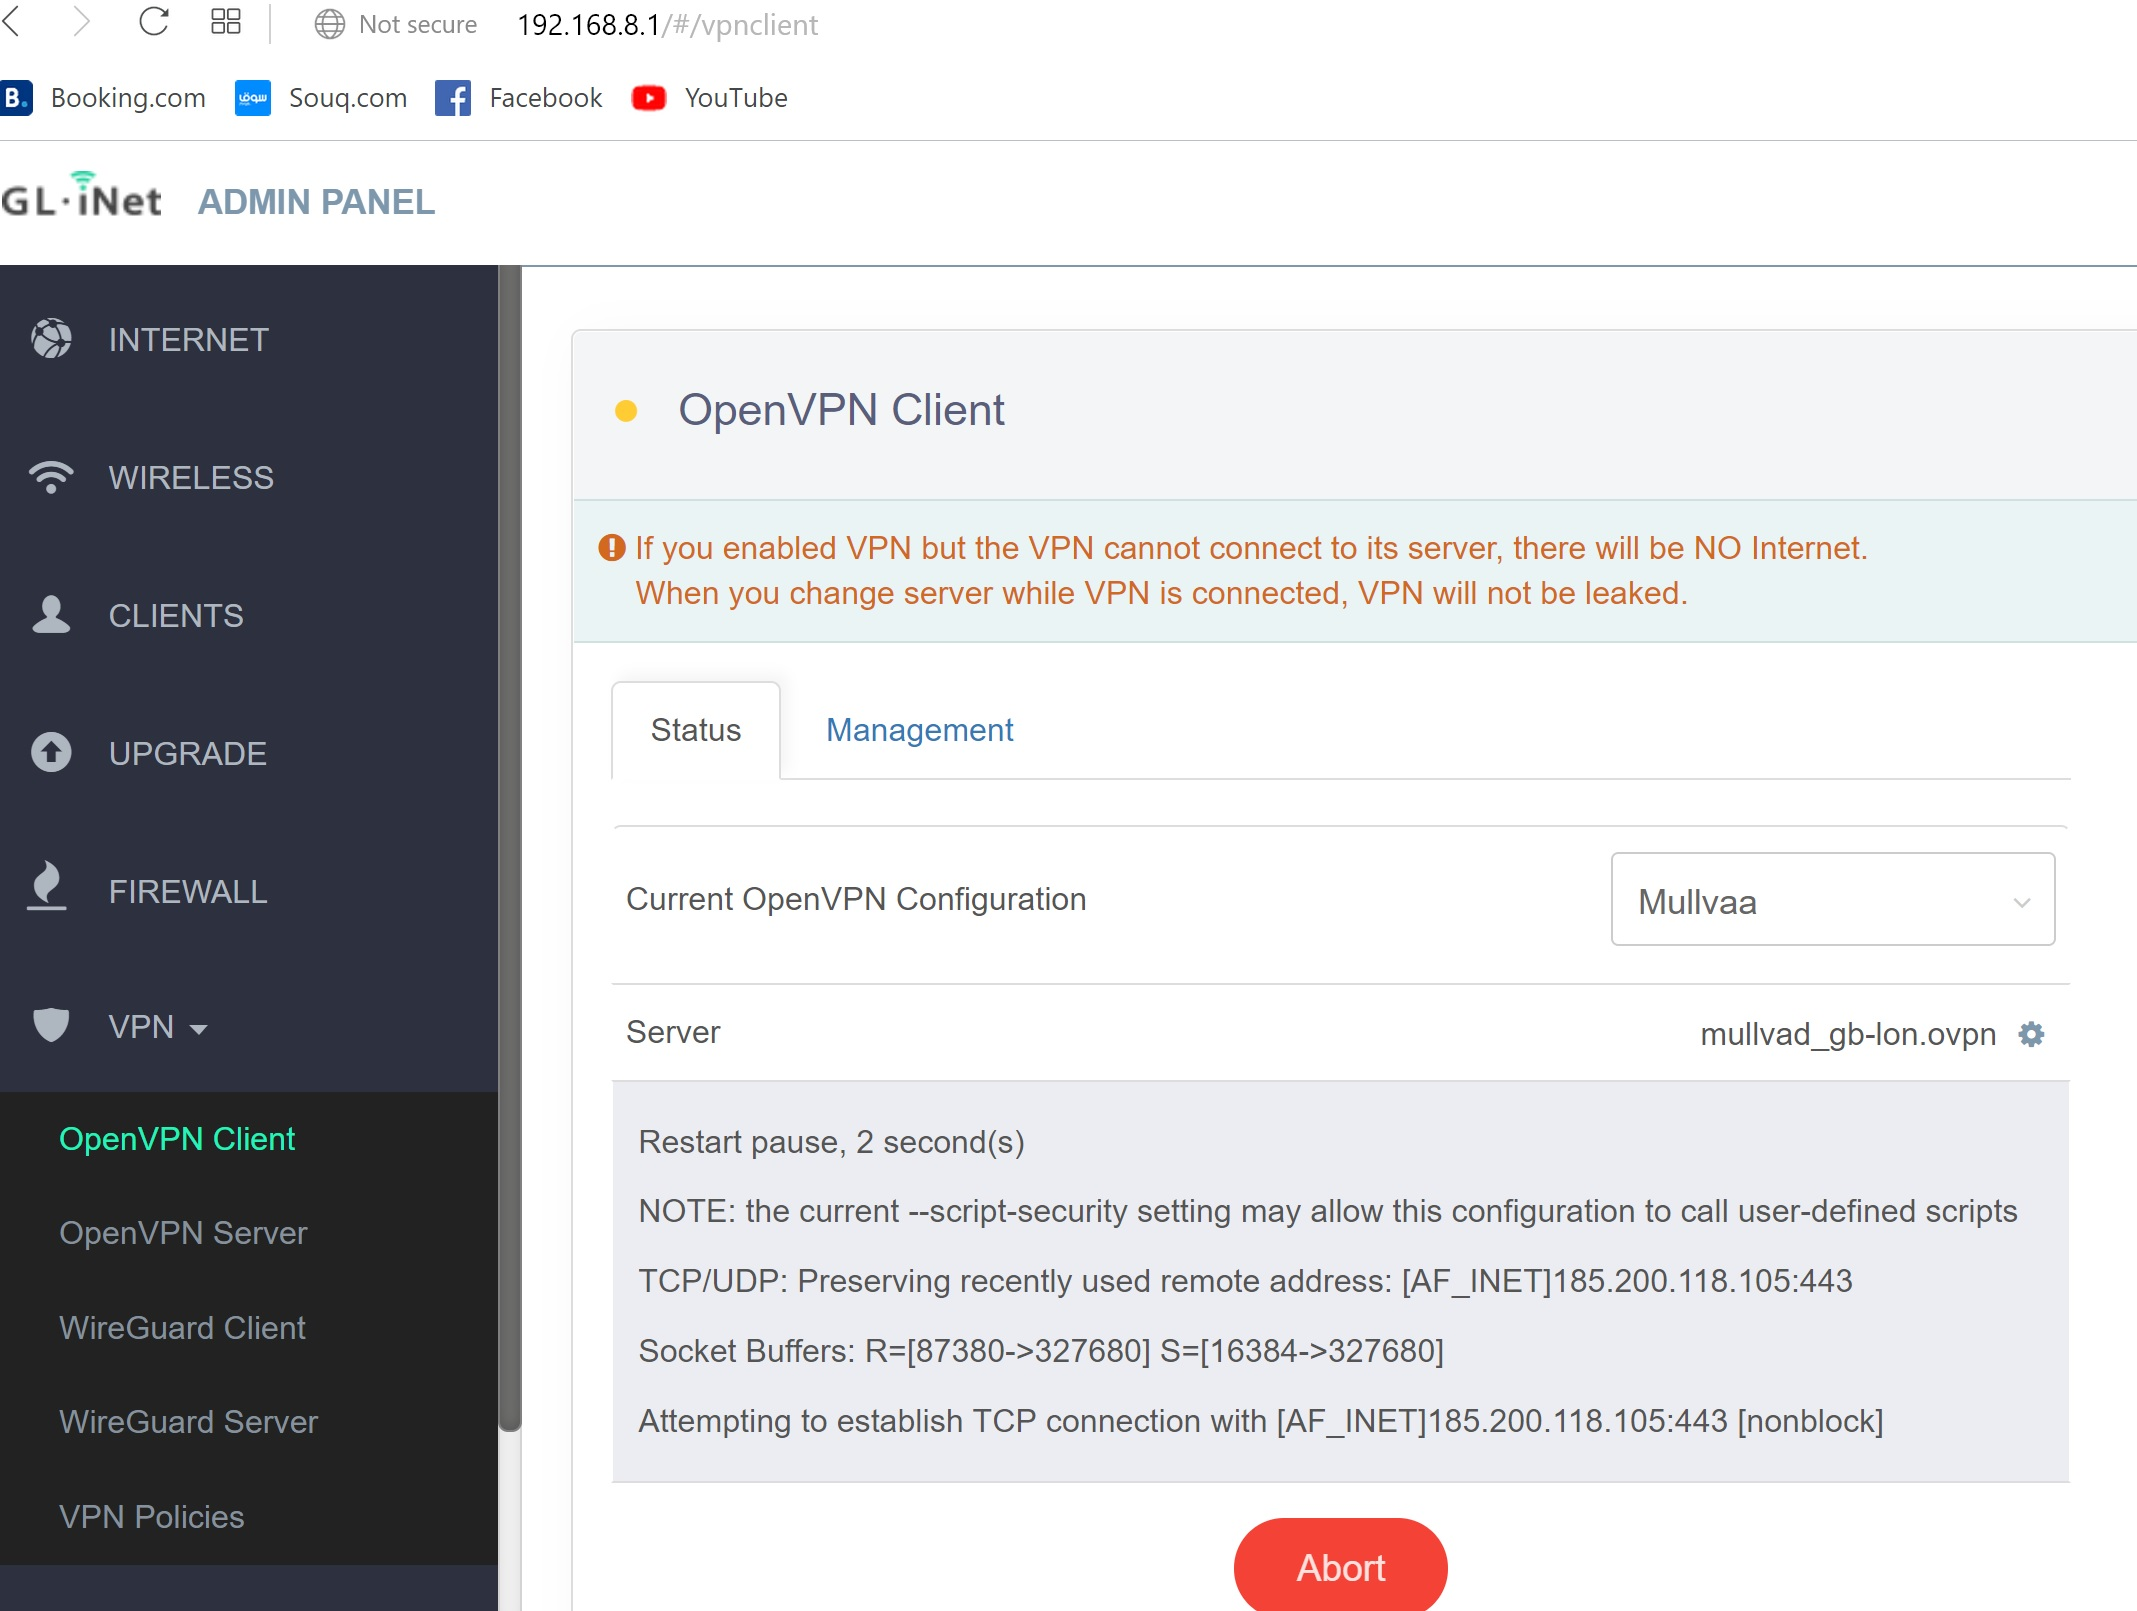 OpenVPN Client never connects (Mullvad) - software - GL iNet